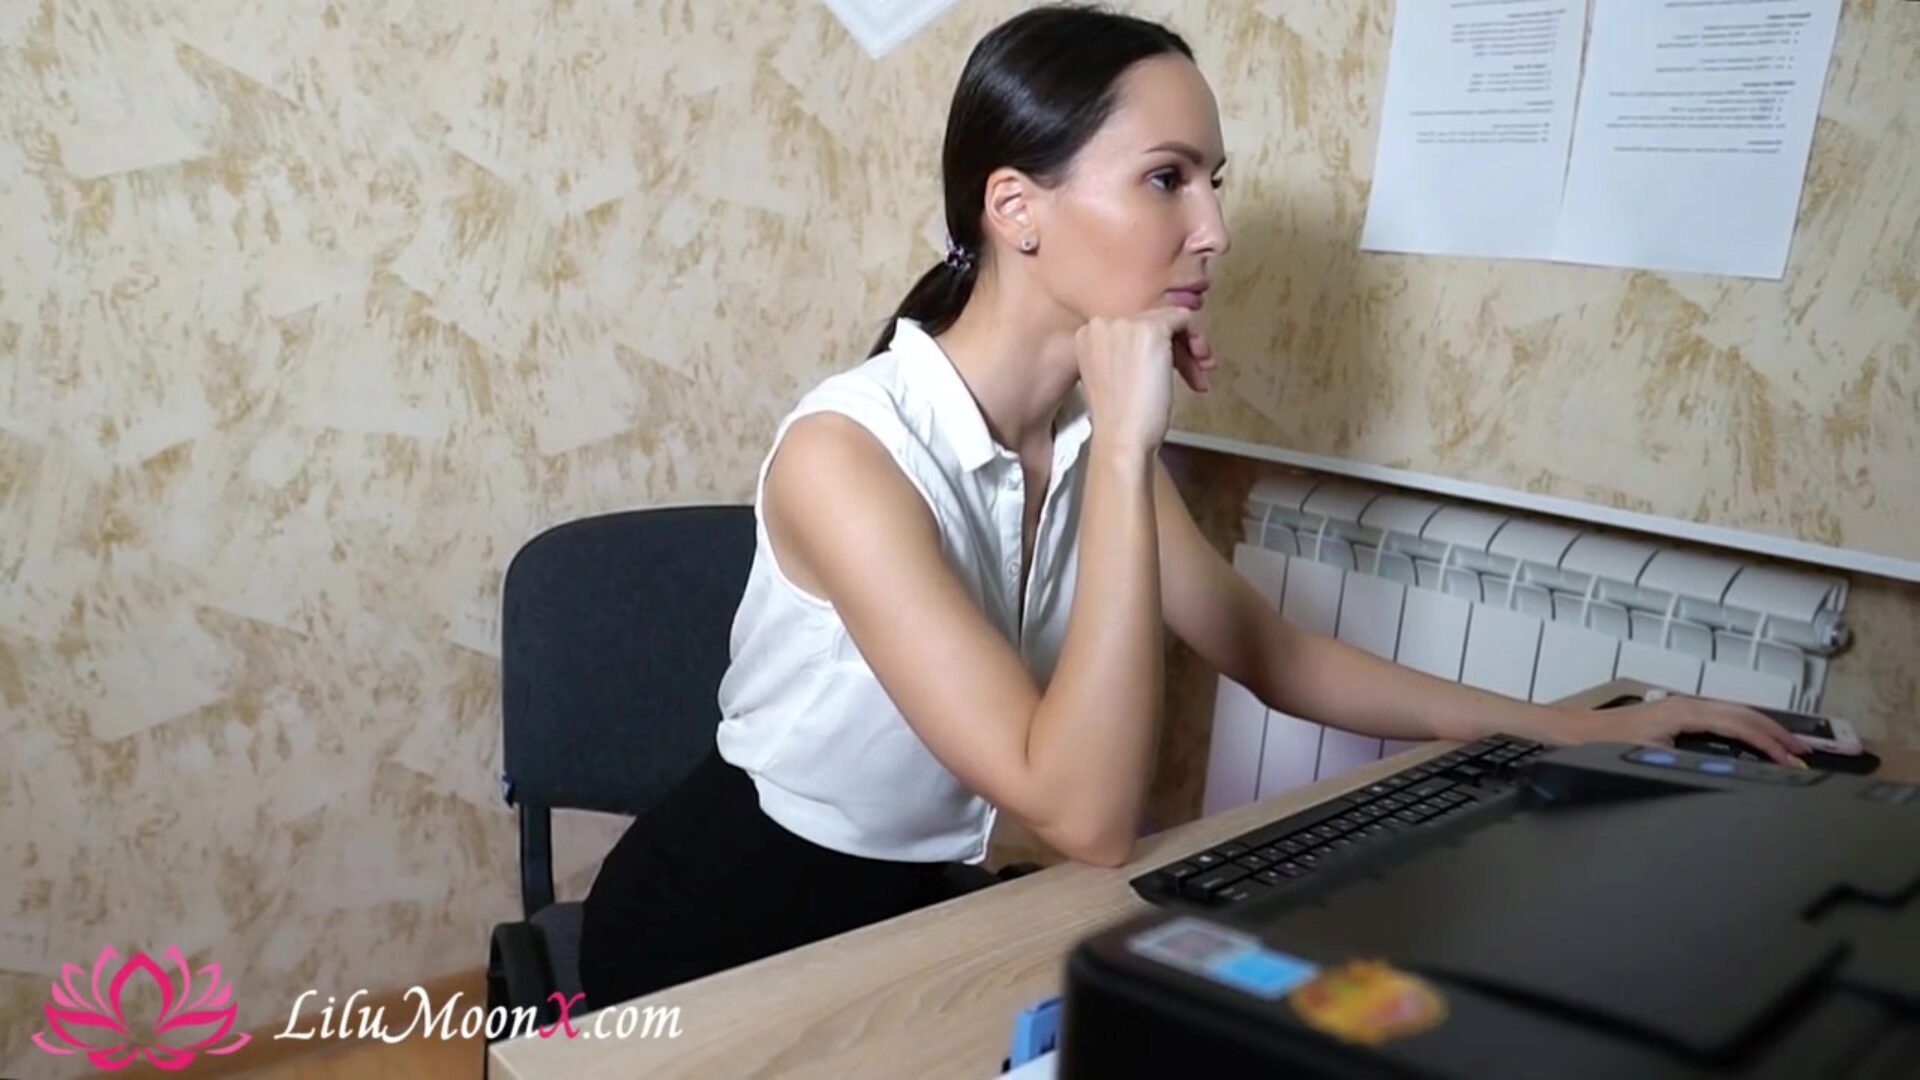 Office Secretary Fingering Wet Pussy after Long Day - Lilu Moon